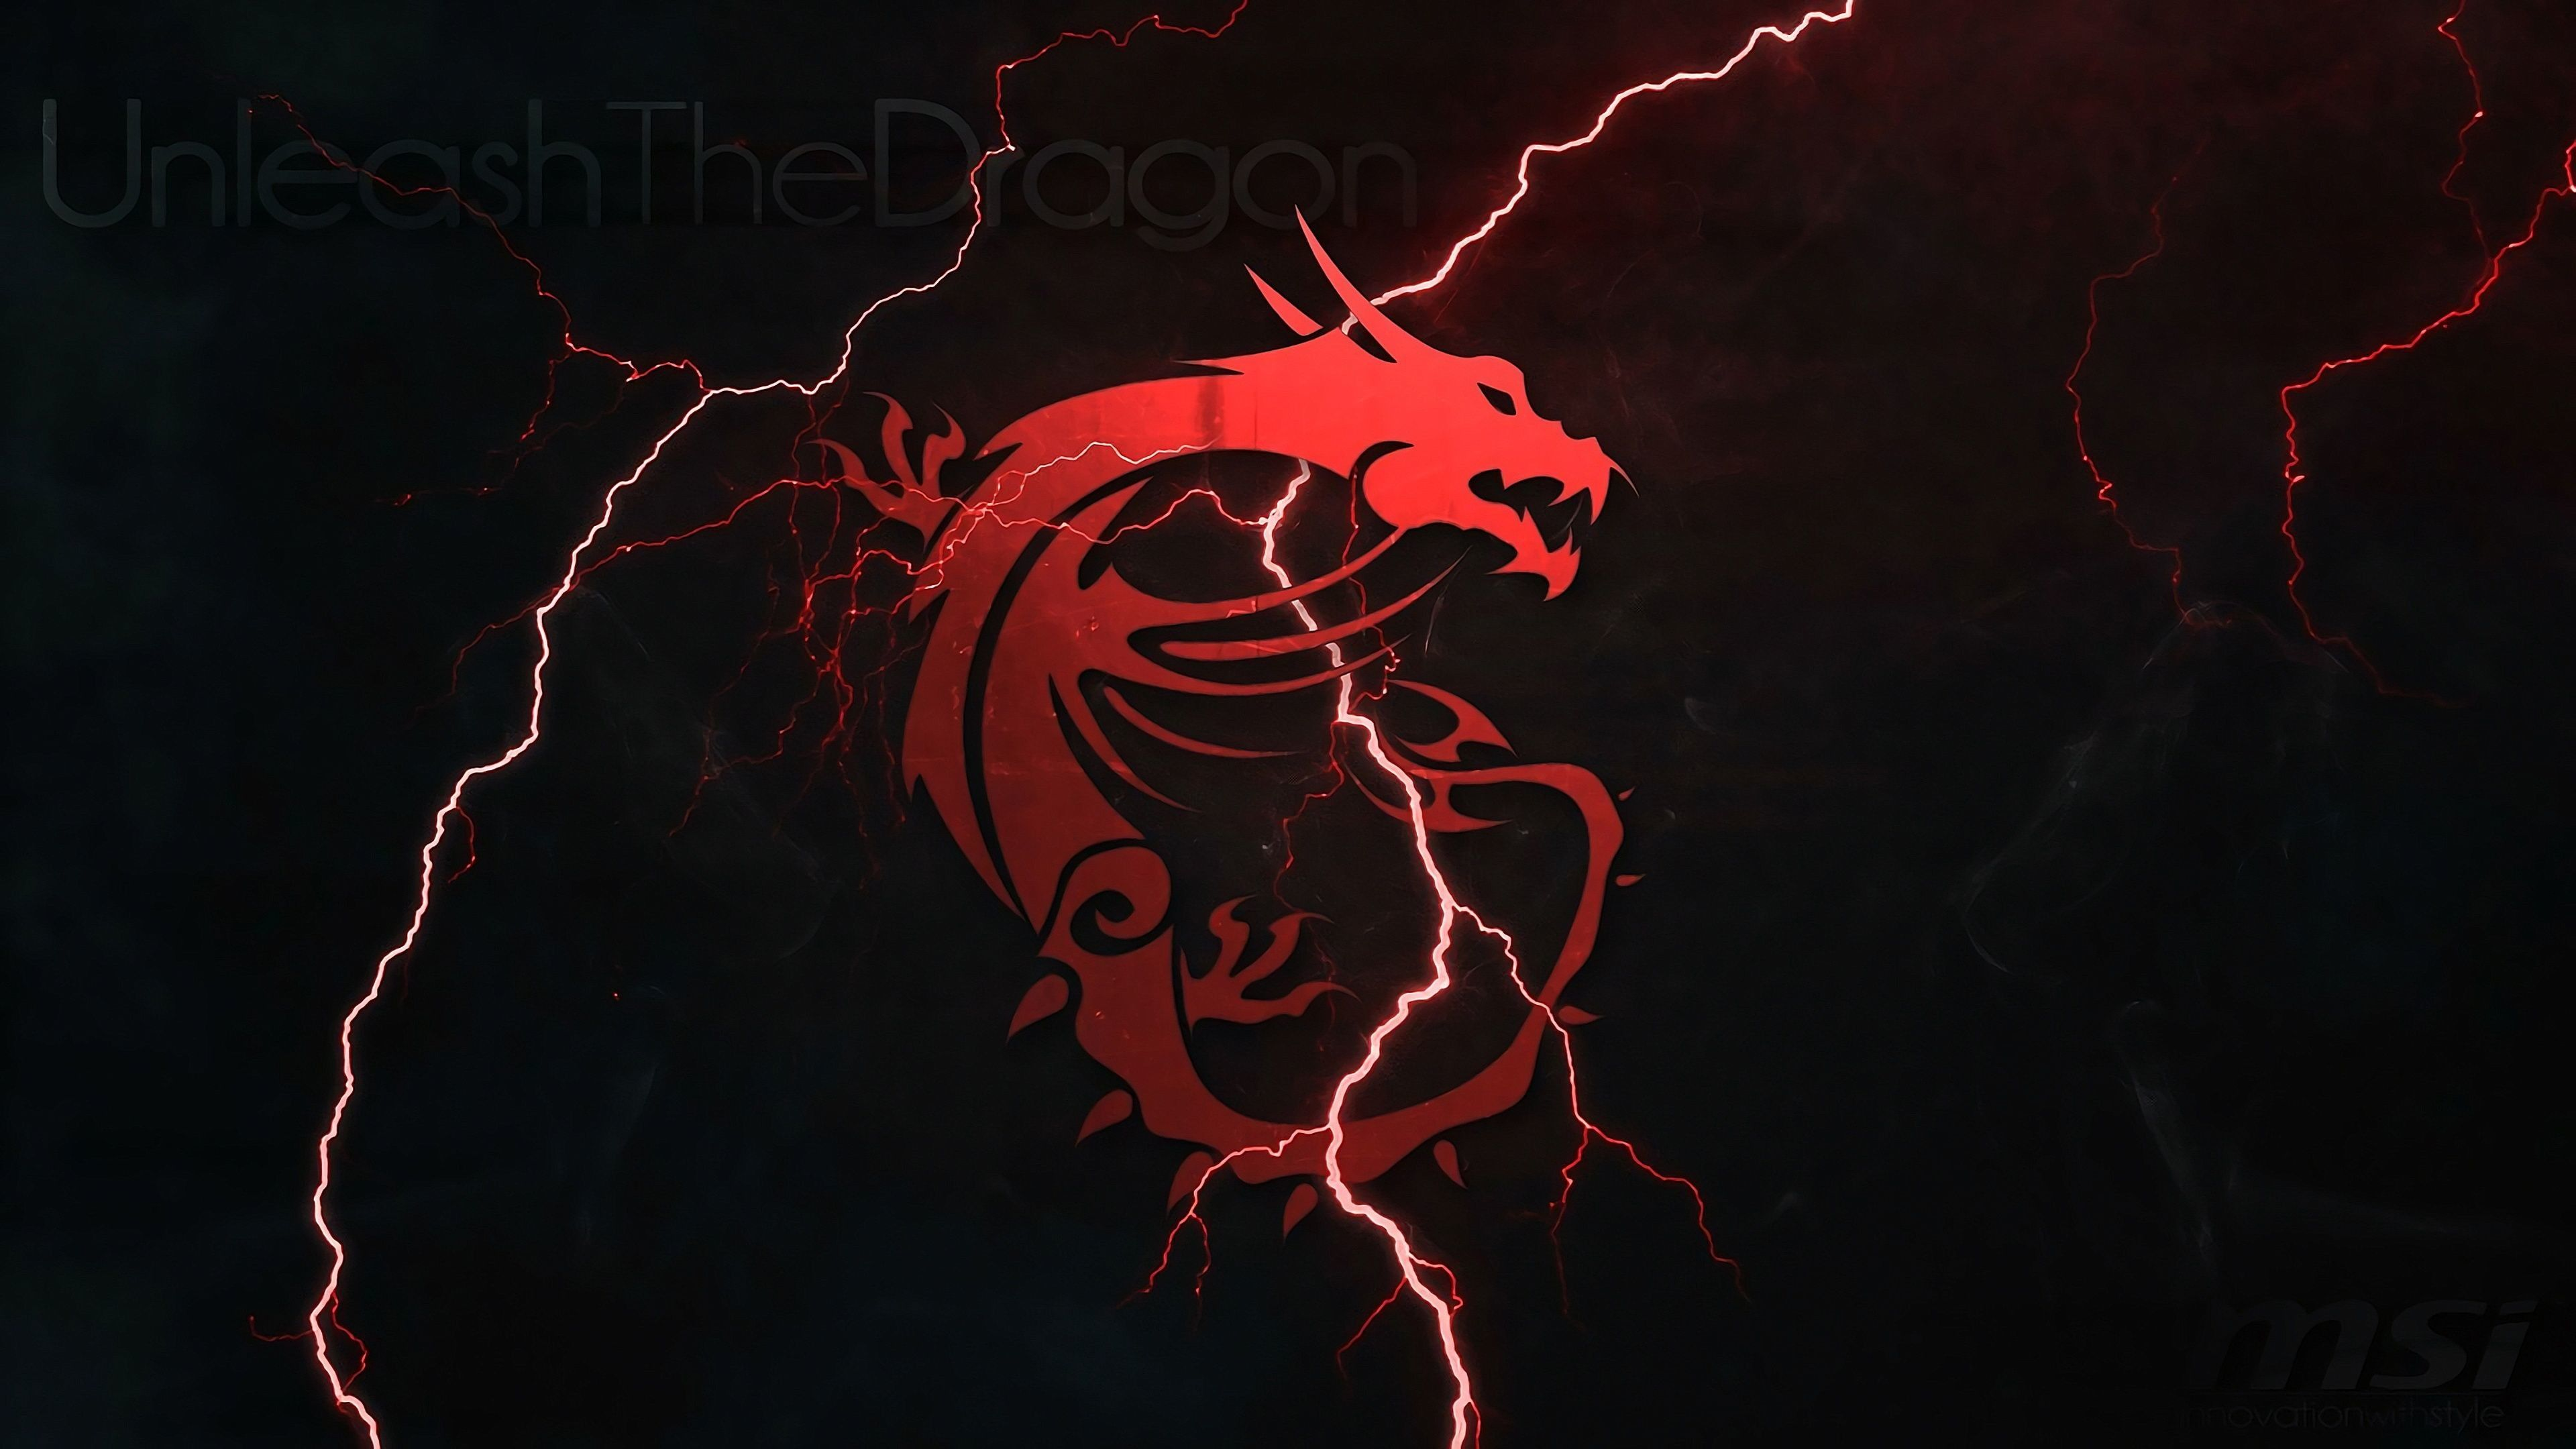 Res 3840x2160 Msi Dragon Logo Lightning 4k Wallpaper Gaming Wallpapers Dark Wallpaper 3840x2160 Wallpaper